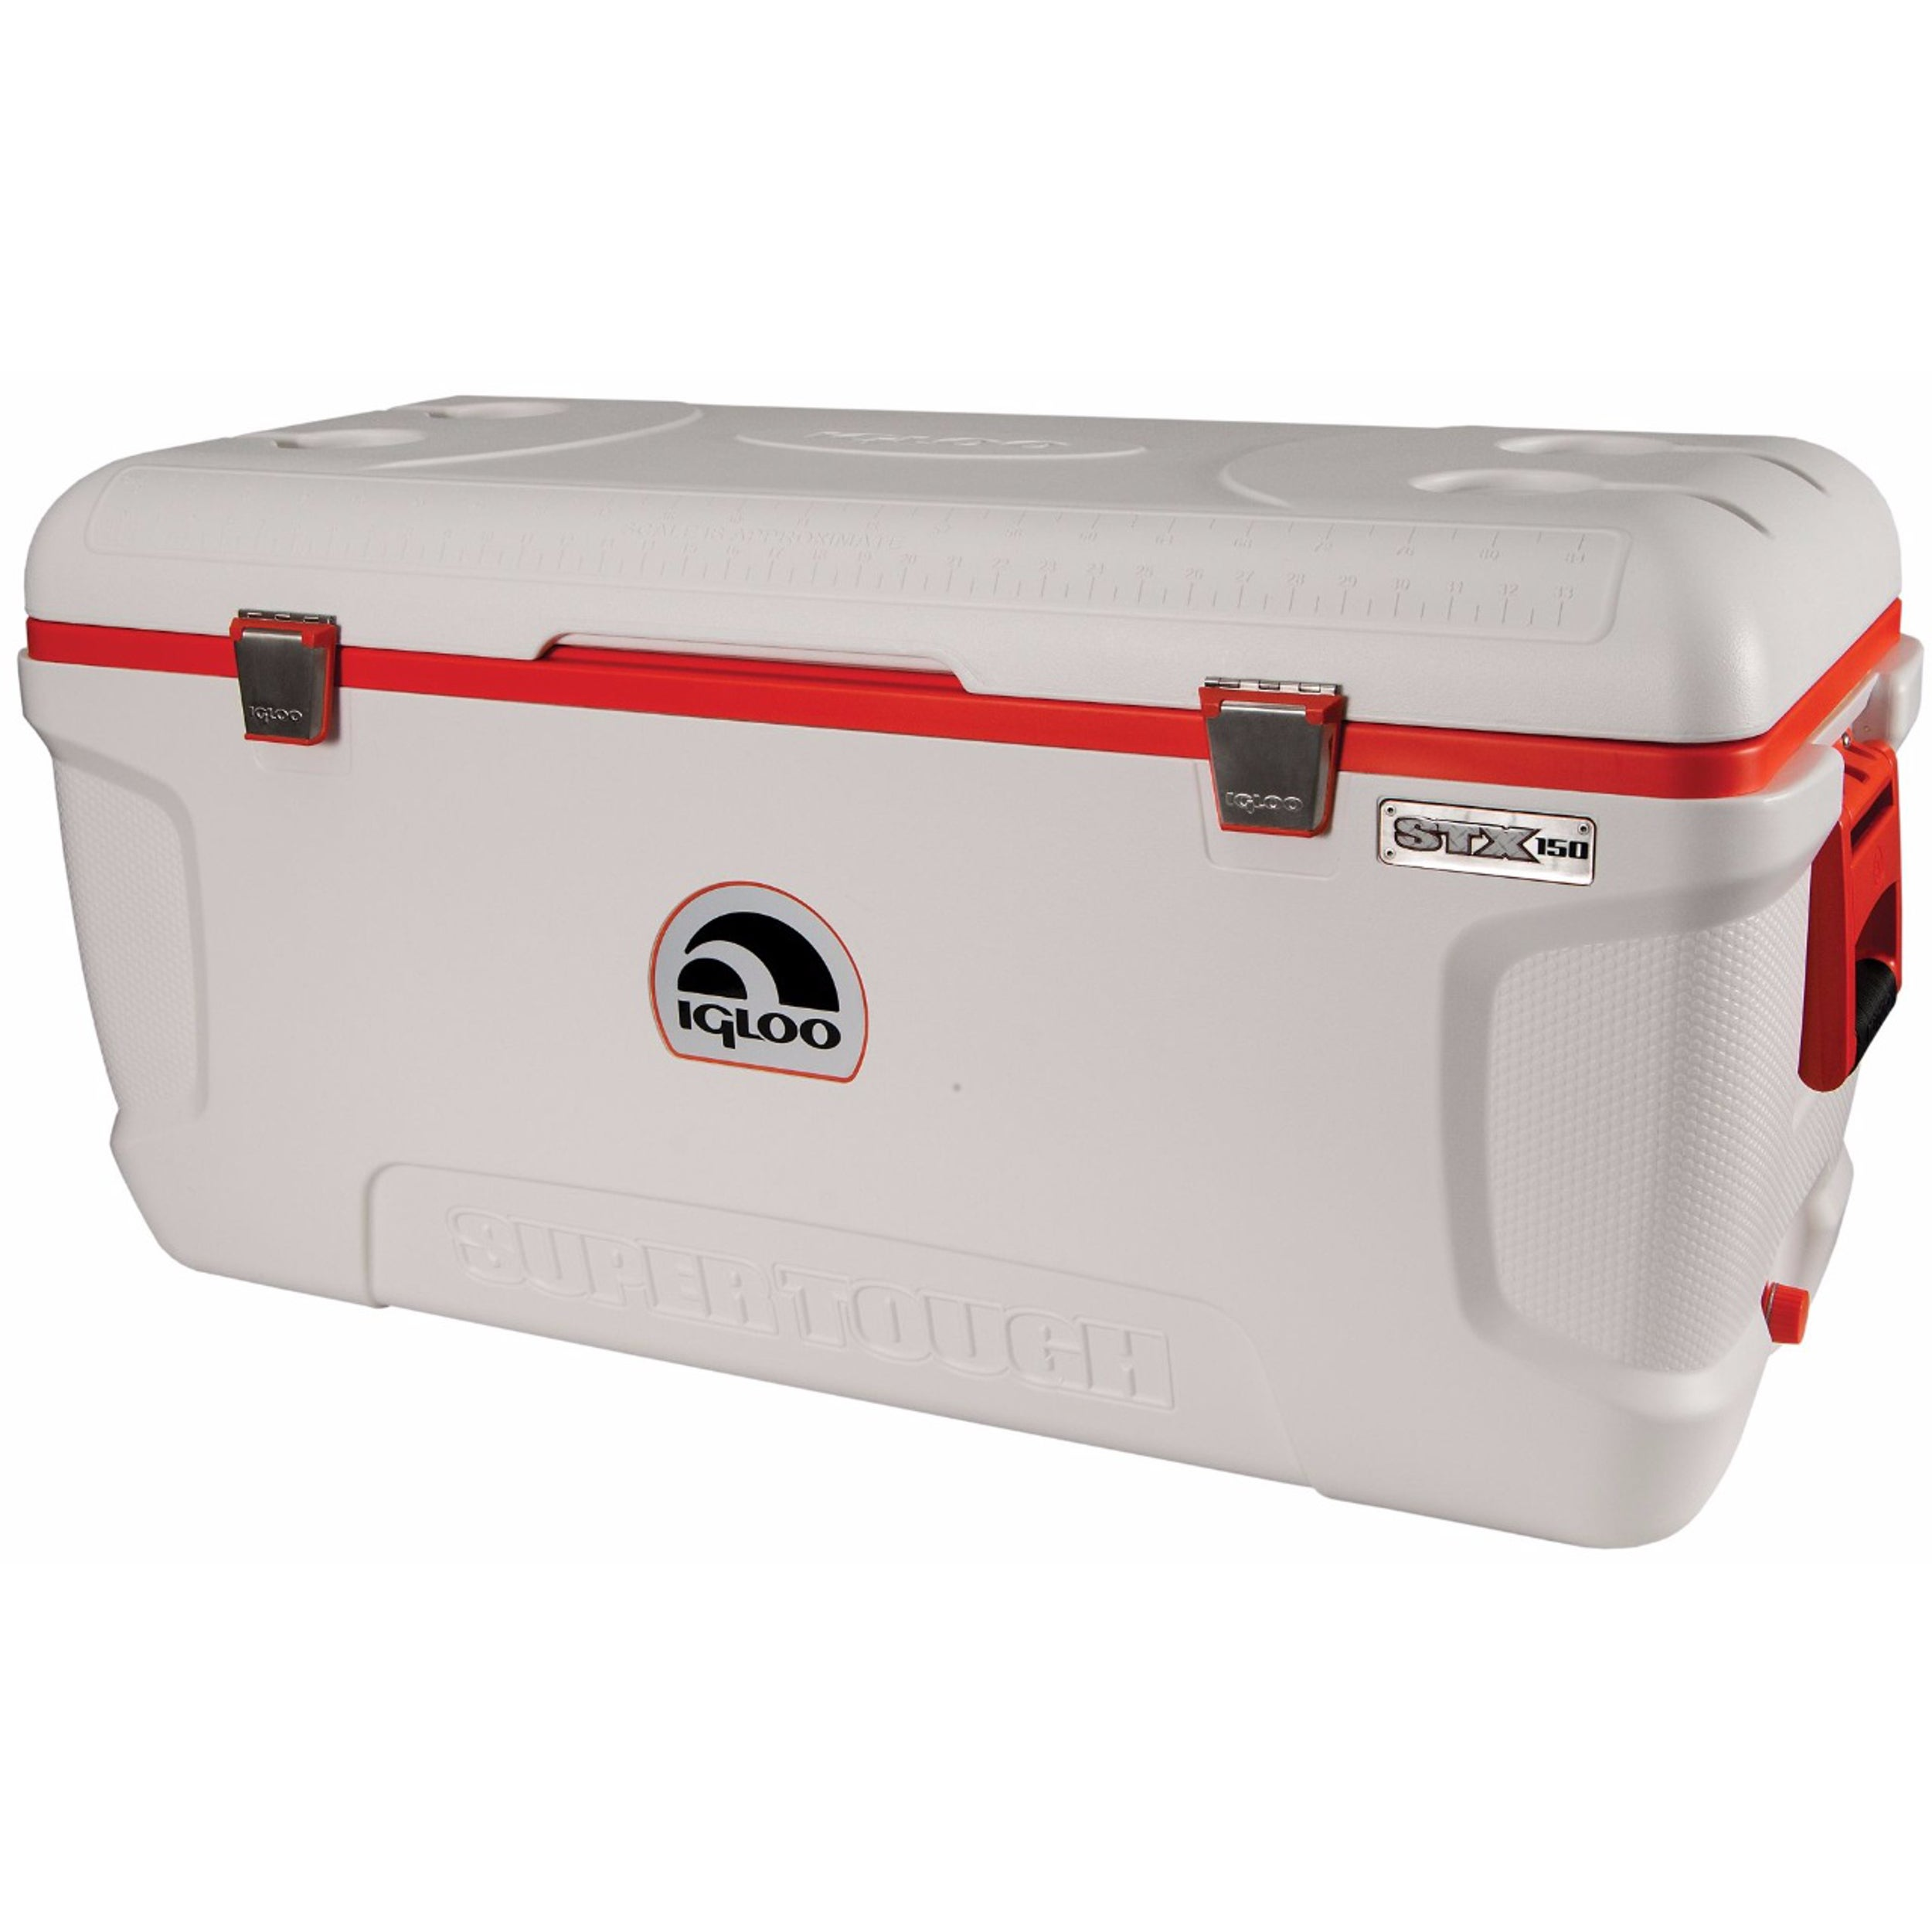 Igloo Super Tough STX 150 Cooler, Silver stainless steel